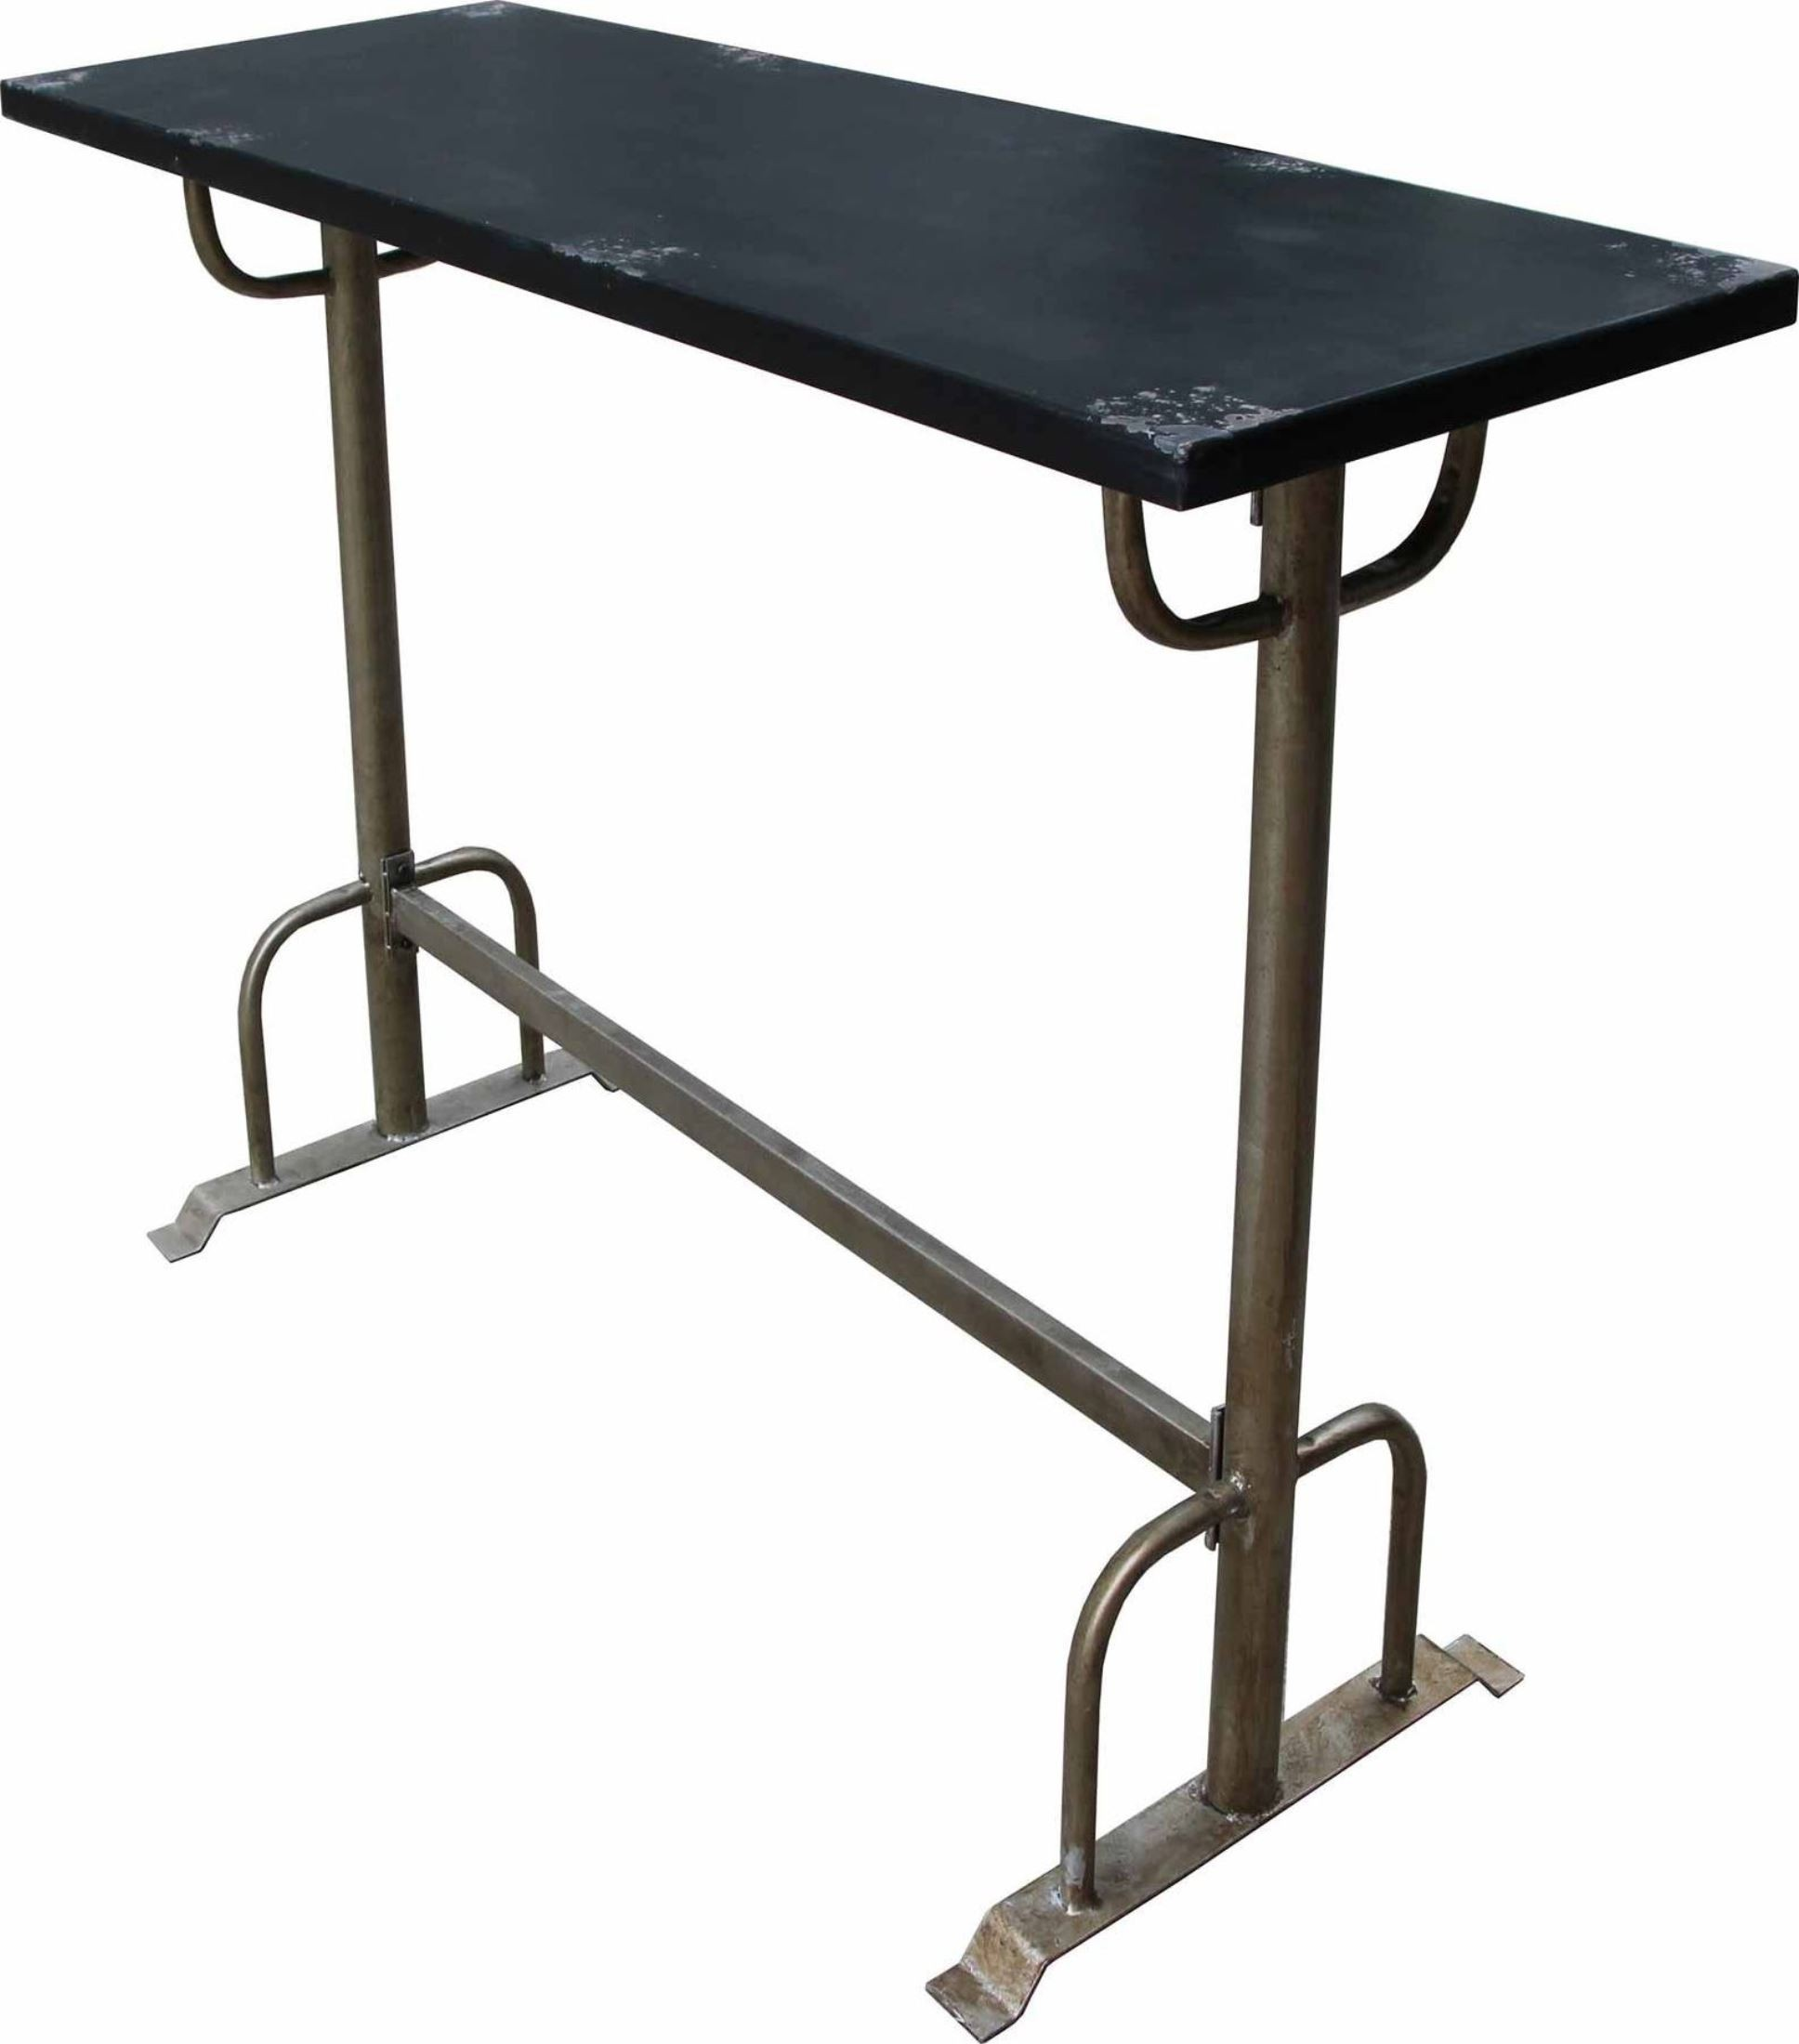 Sturdy Black Bar Table From Moes Home